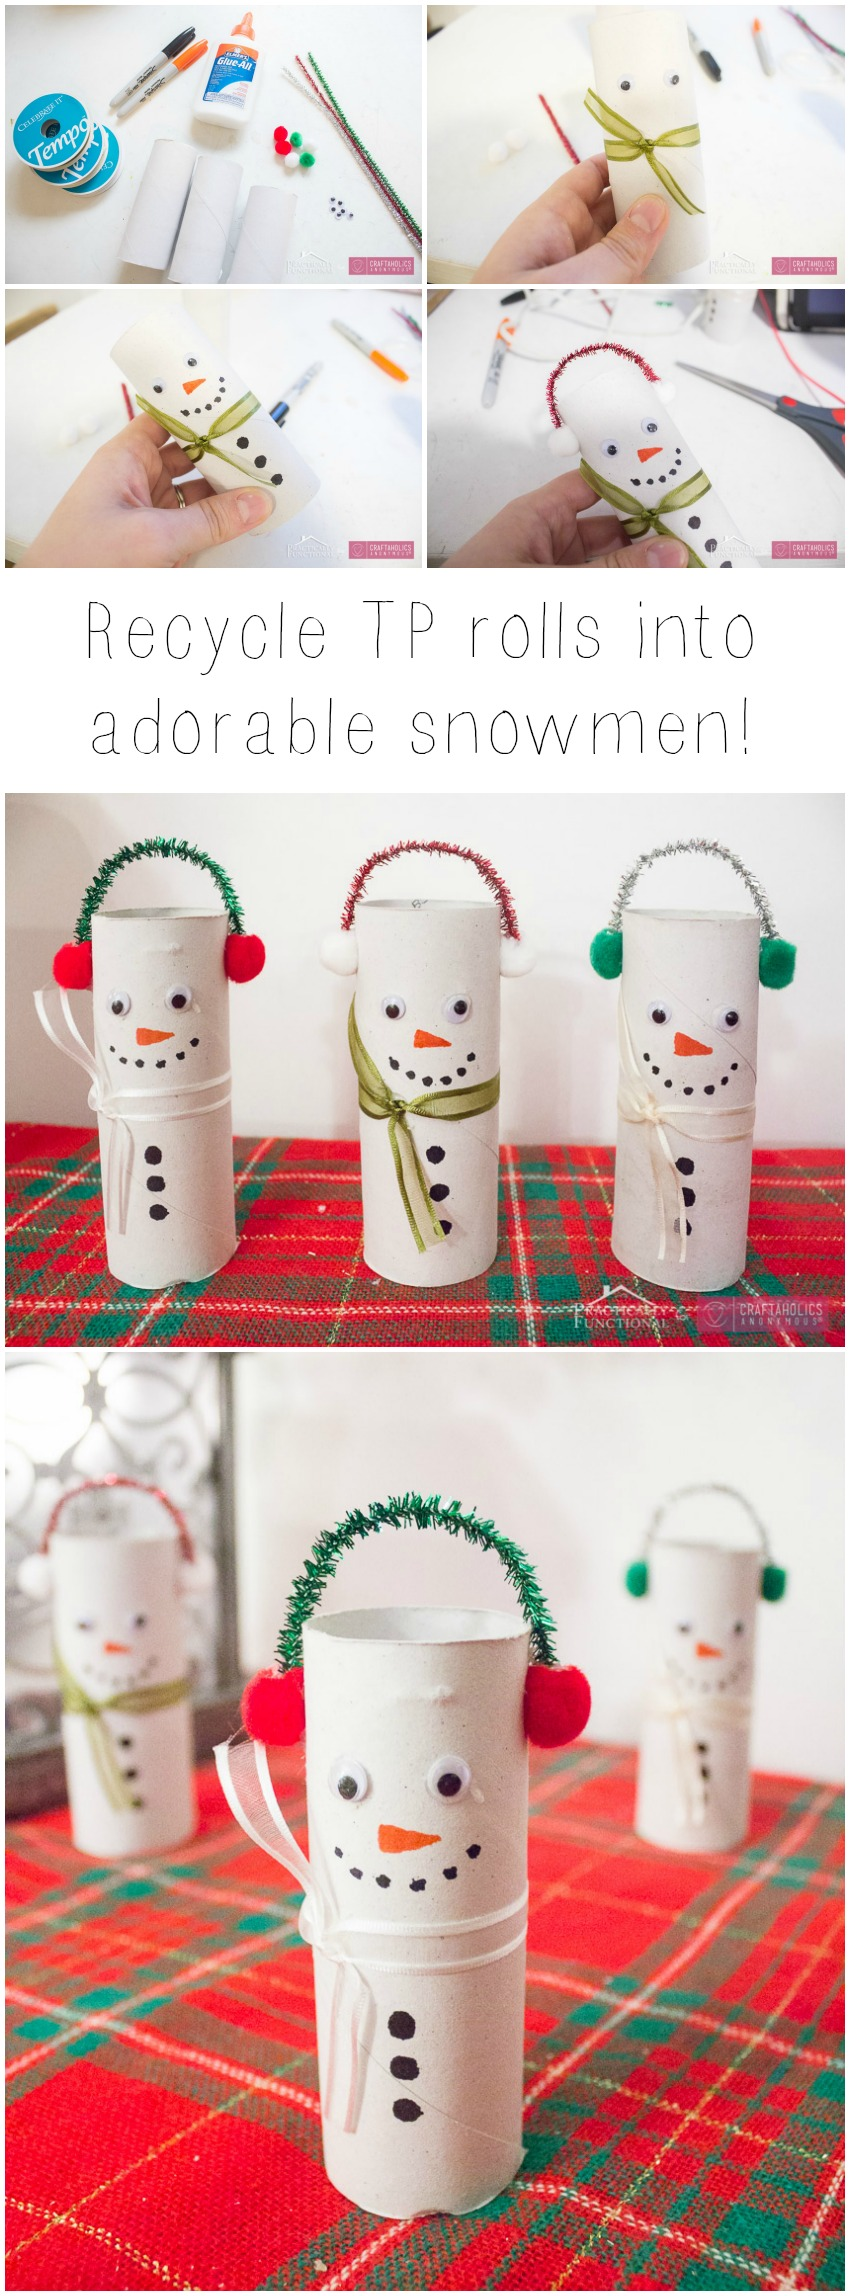 Toilet Paper roll Snowmen craft idea || Make these with the kids this winter! Make one or a whole family. They'll love personalizing them.